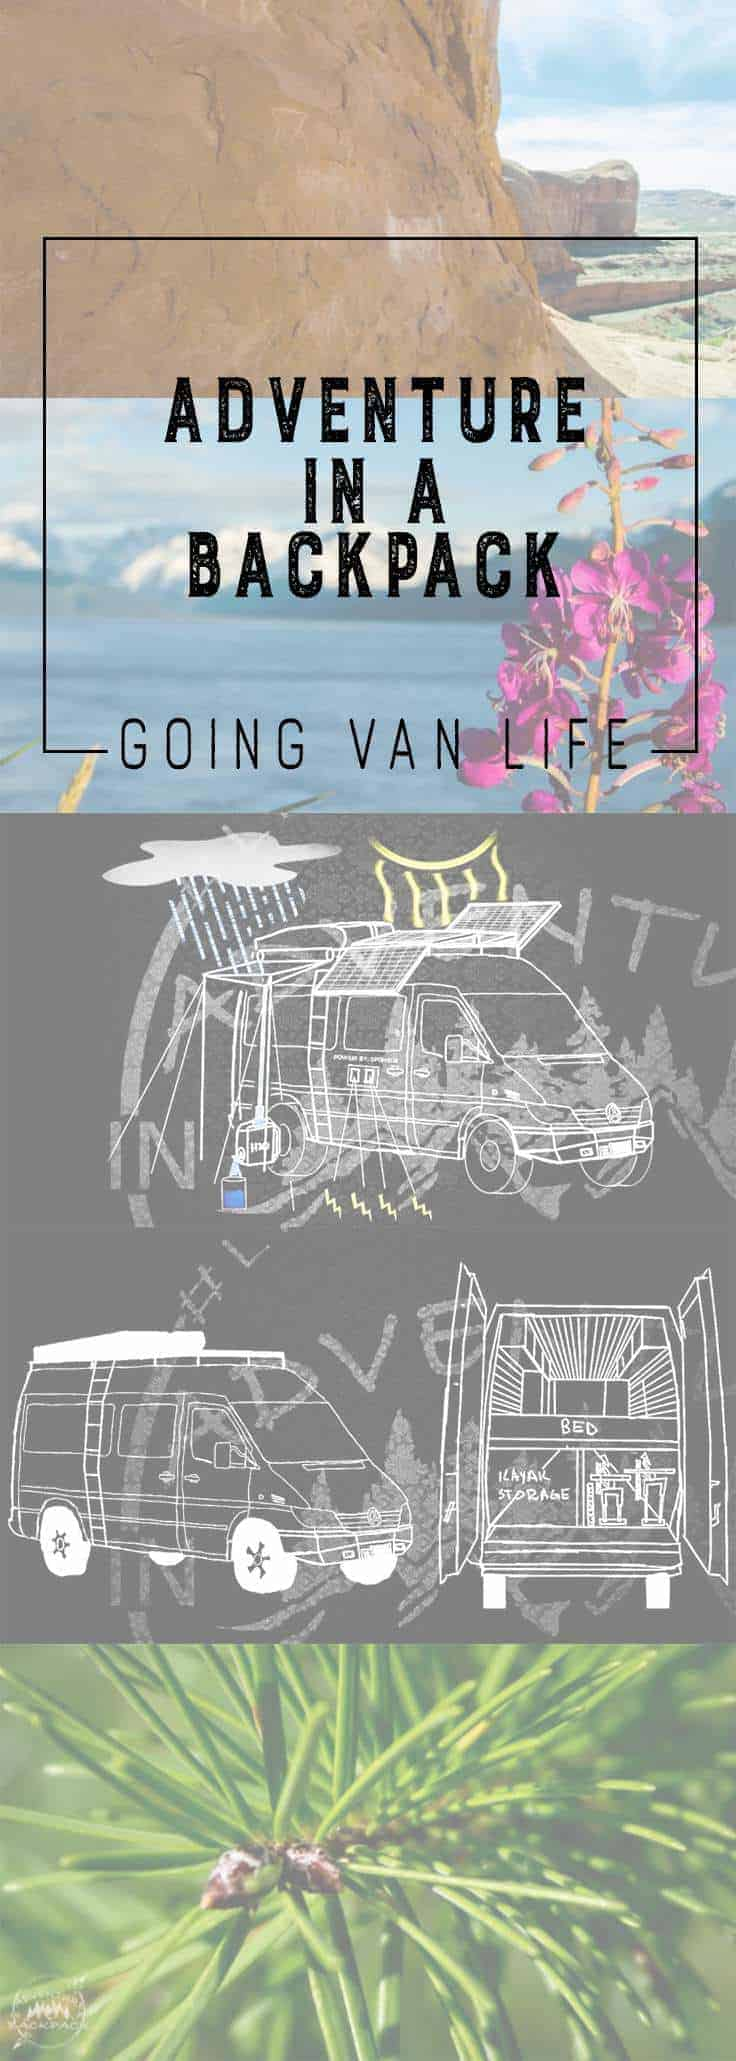 We are building an ADVENTURE VAN!! Follow along in the fun! Van Life | Campervan | Camper Van | Campervan Interior | Adventure Van | Sprinter Van Life | Van Life Ideas